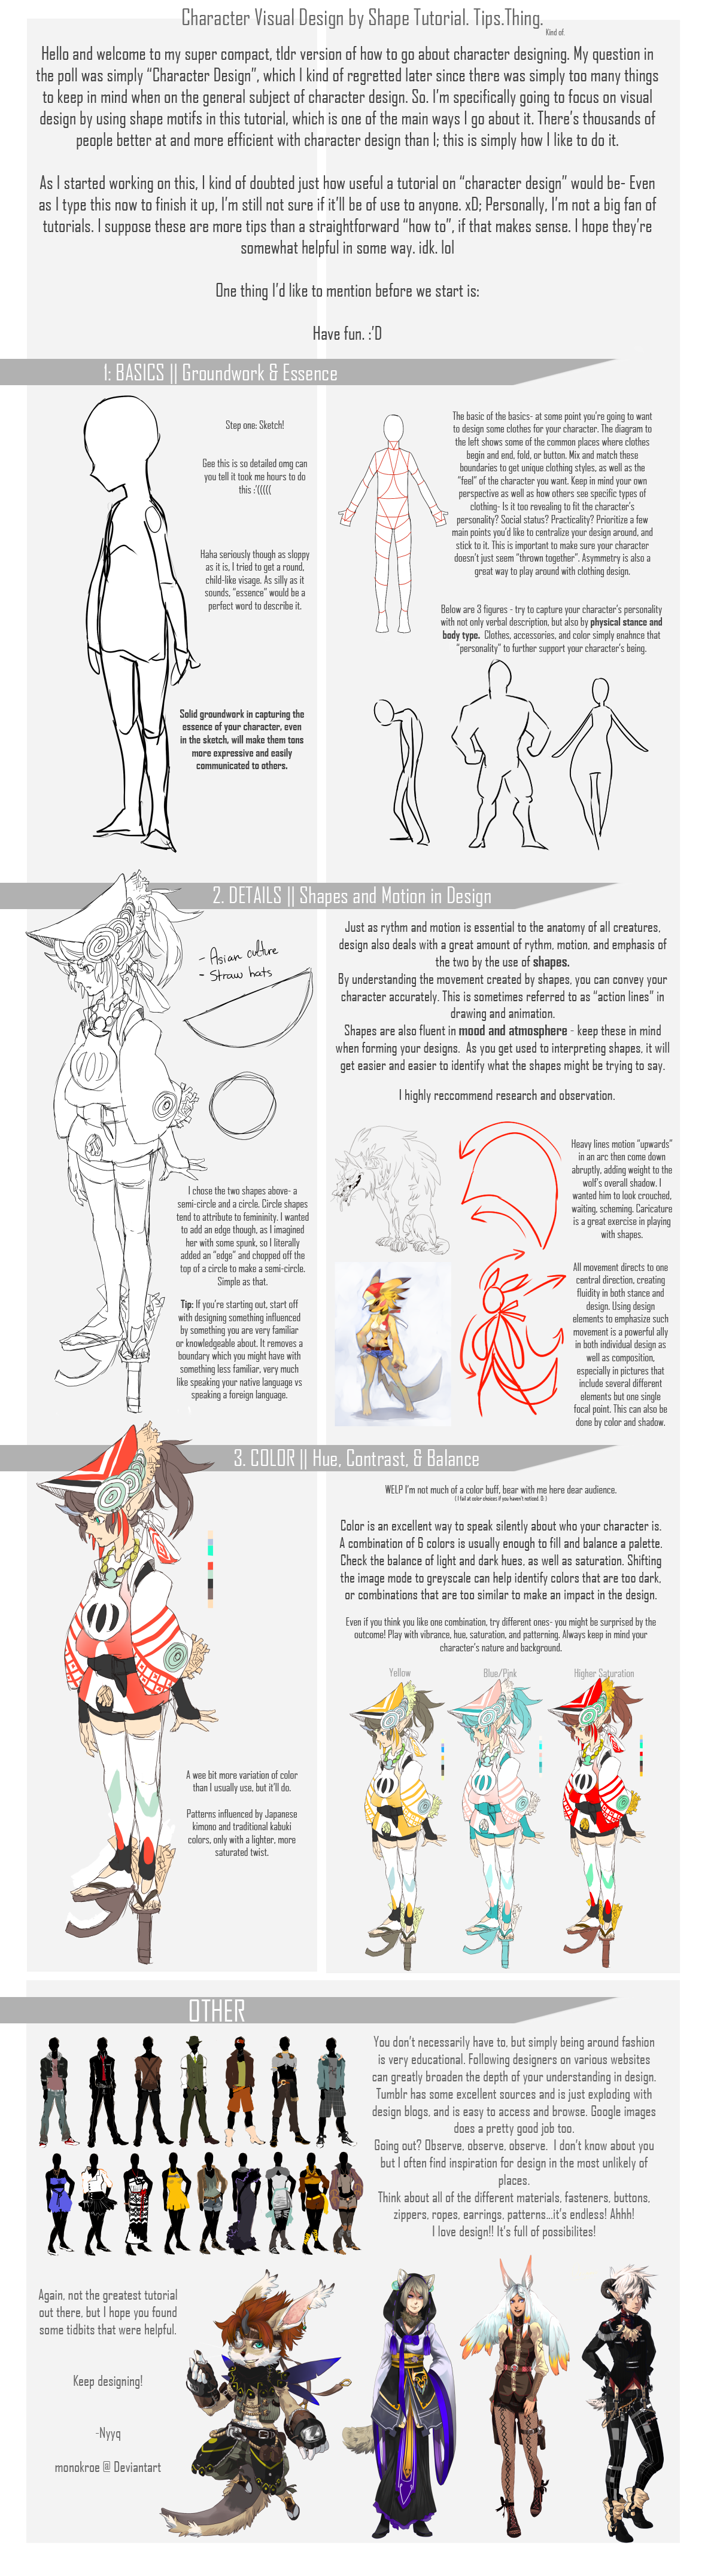 Character Design Tutorial Free : Basic character design by shape monokroe on deviantart